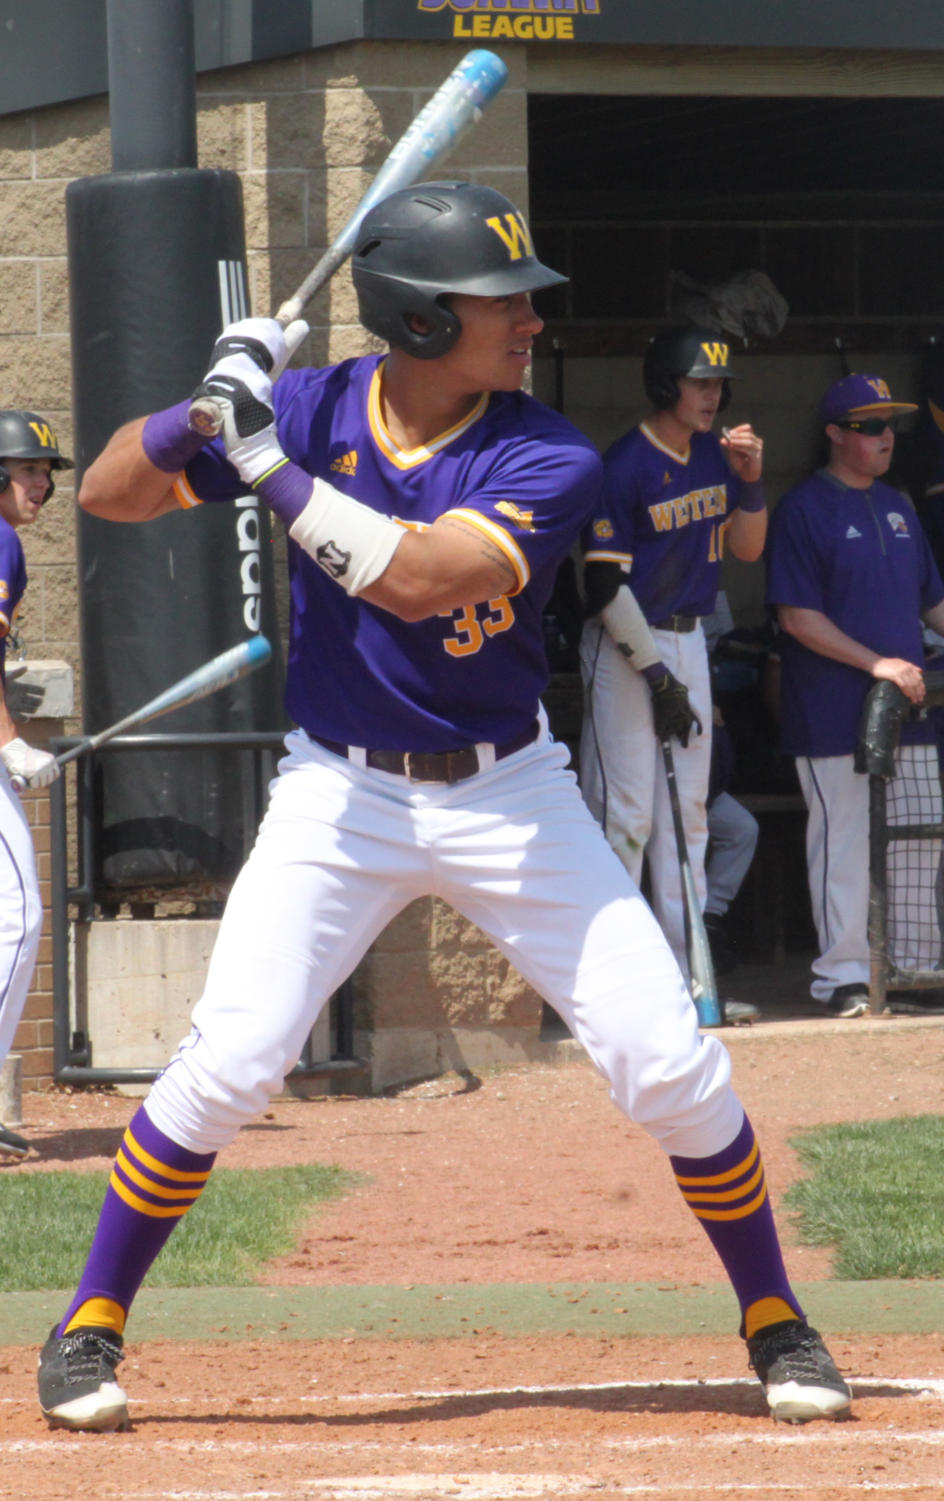 Deion Thompson at bat for the Leathernecks.